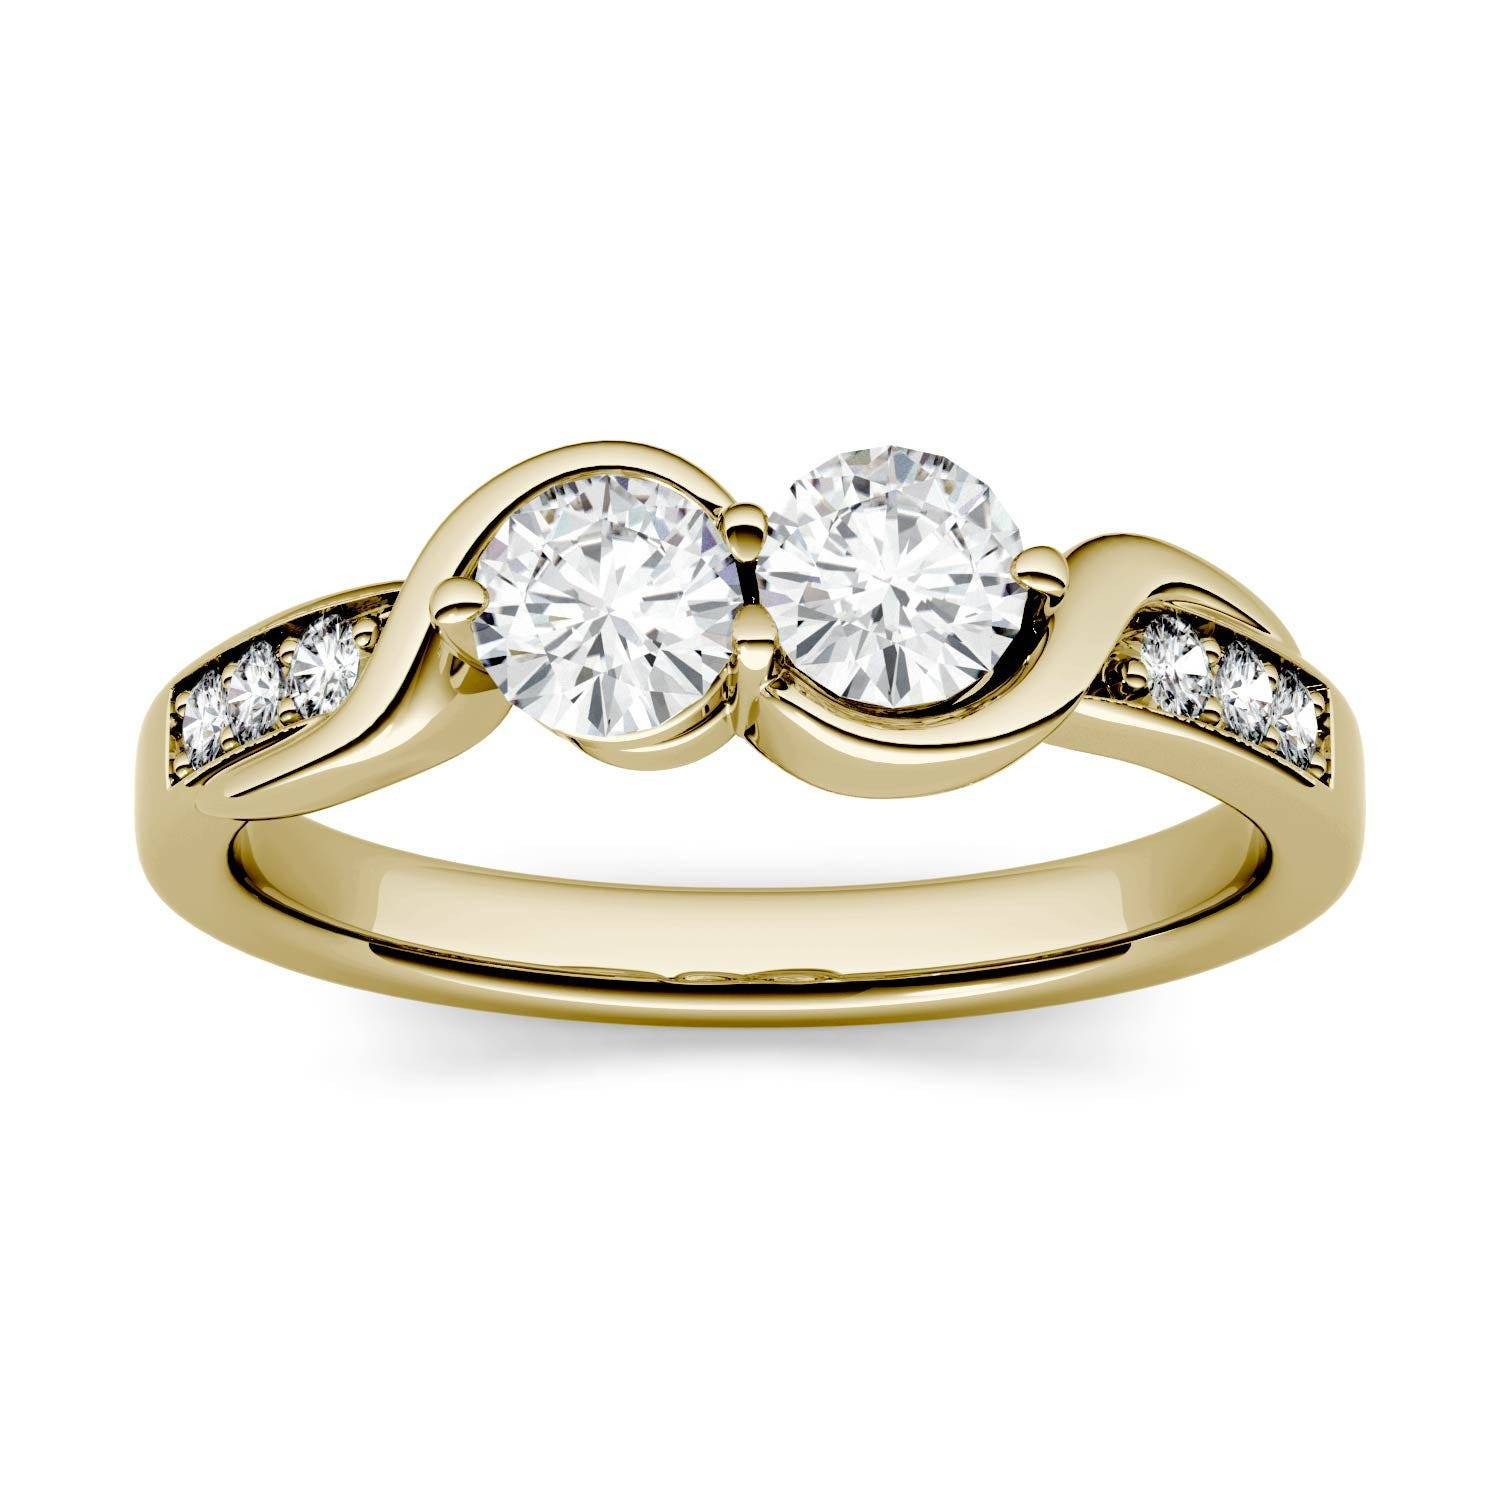 Charles & Colvard Two Stone Swirl with Side Accents Wedding Ring in 14K Yellow Gold, Size: 5, 1.12CTW Round Forever One - Colorless Moissanite Charles & Colvard  - Yellow Gold - Size: 5